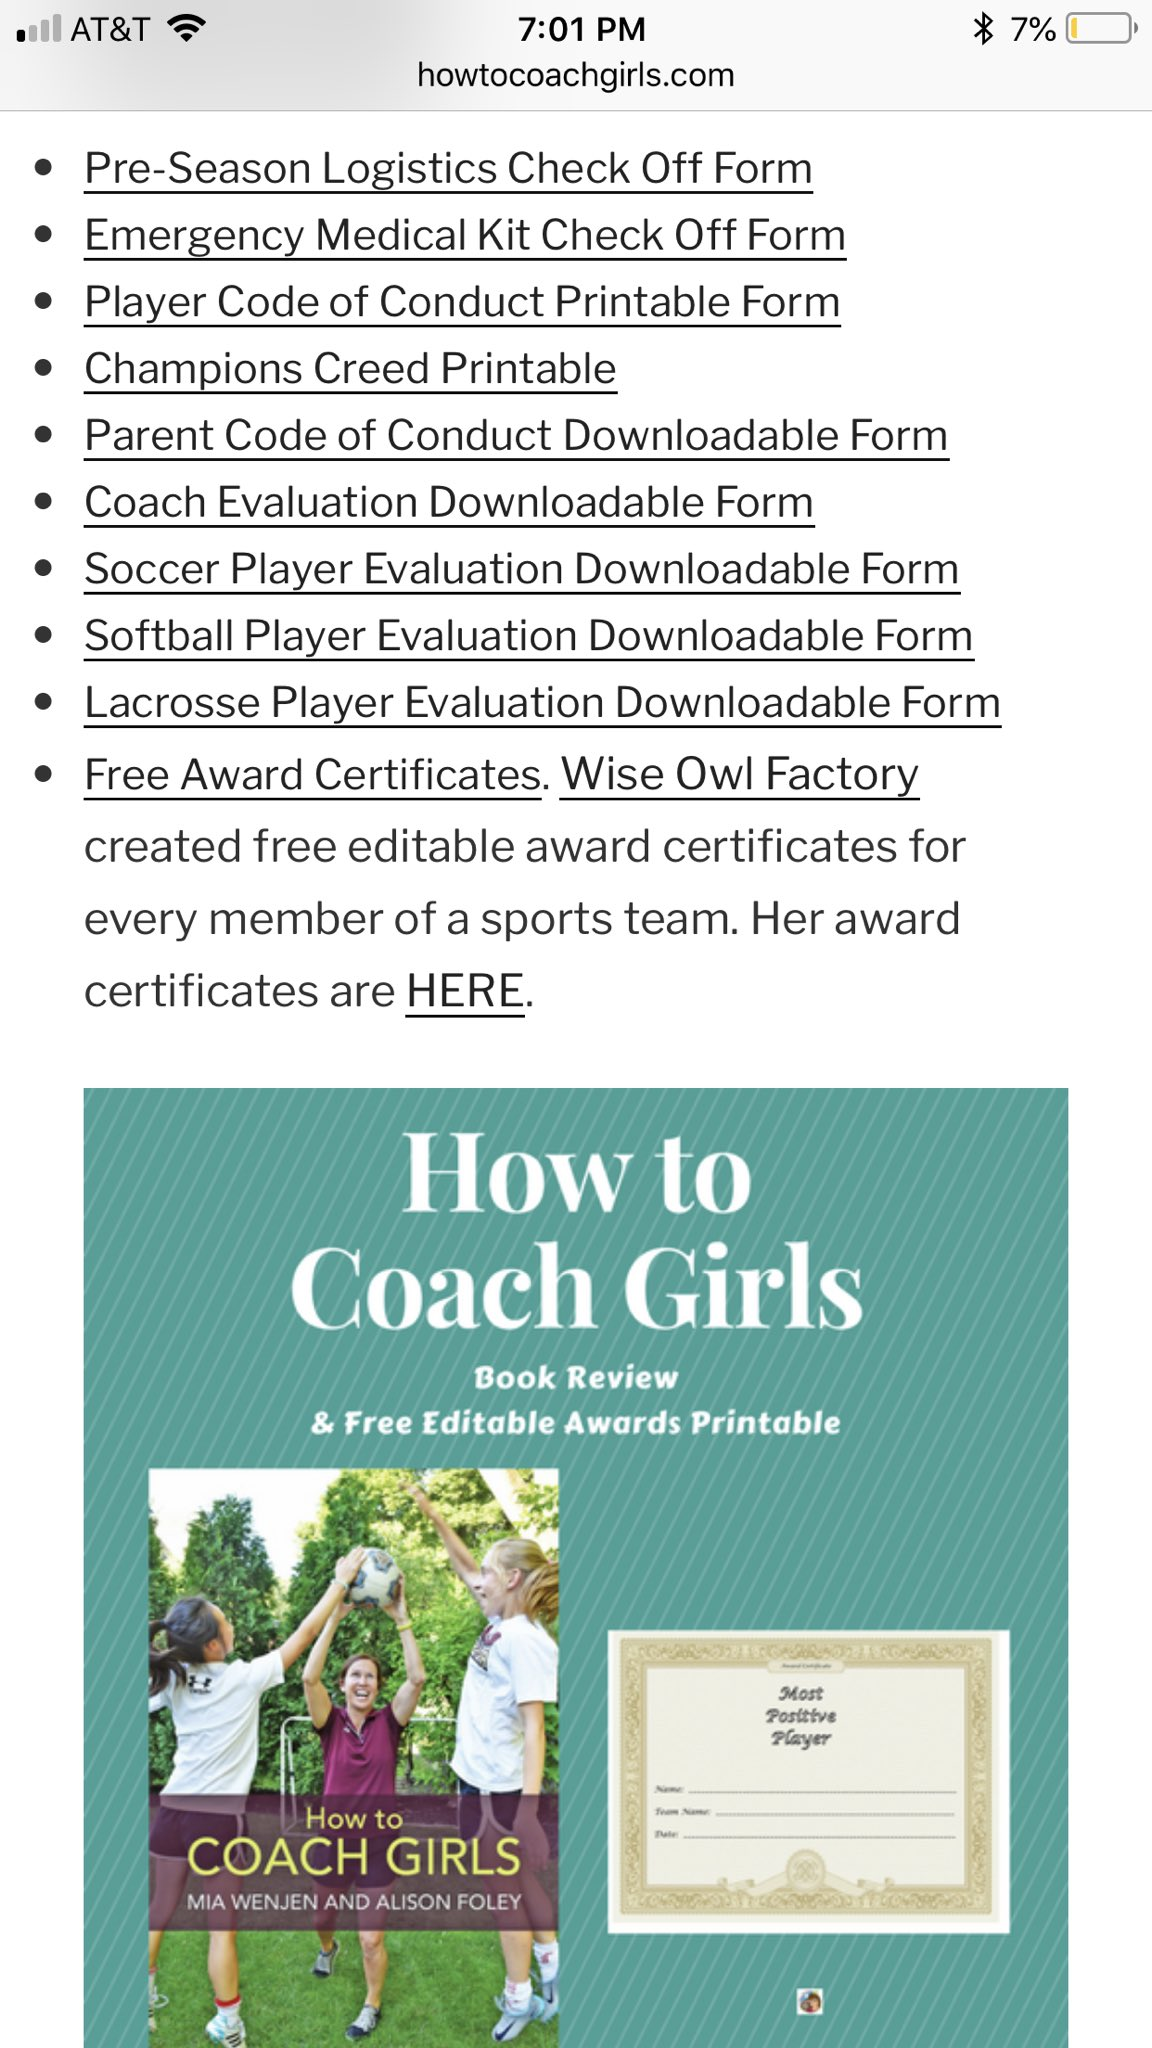 HowToCoachGirls On Twitter Free Stuff For Coaches Coach